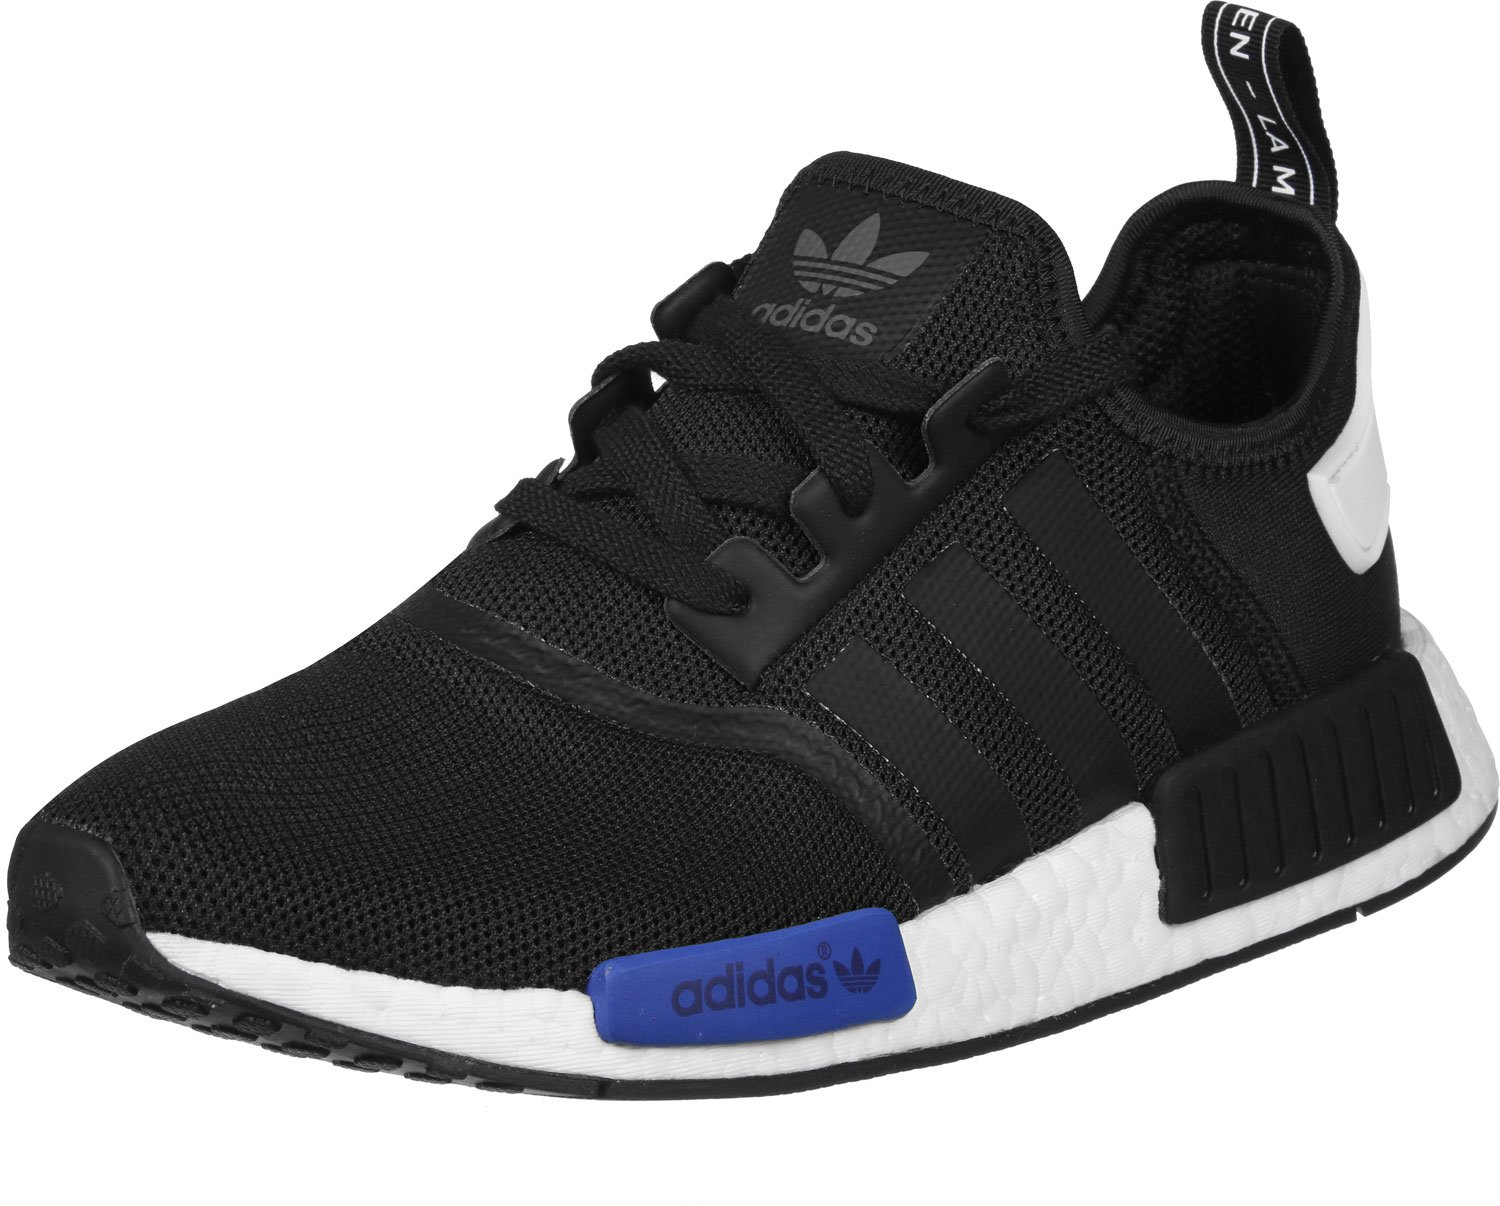 adidas Originals NMD_R1 Womens Running Trainers Sneakers B01CUPGYS4 11 D(M) US|Black, Blue, White